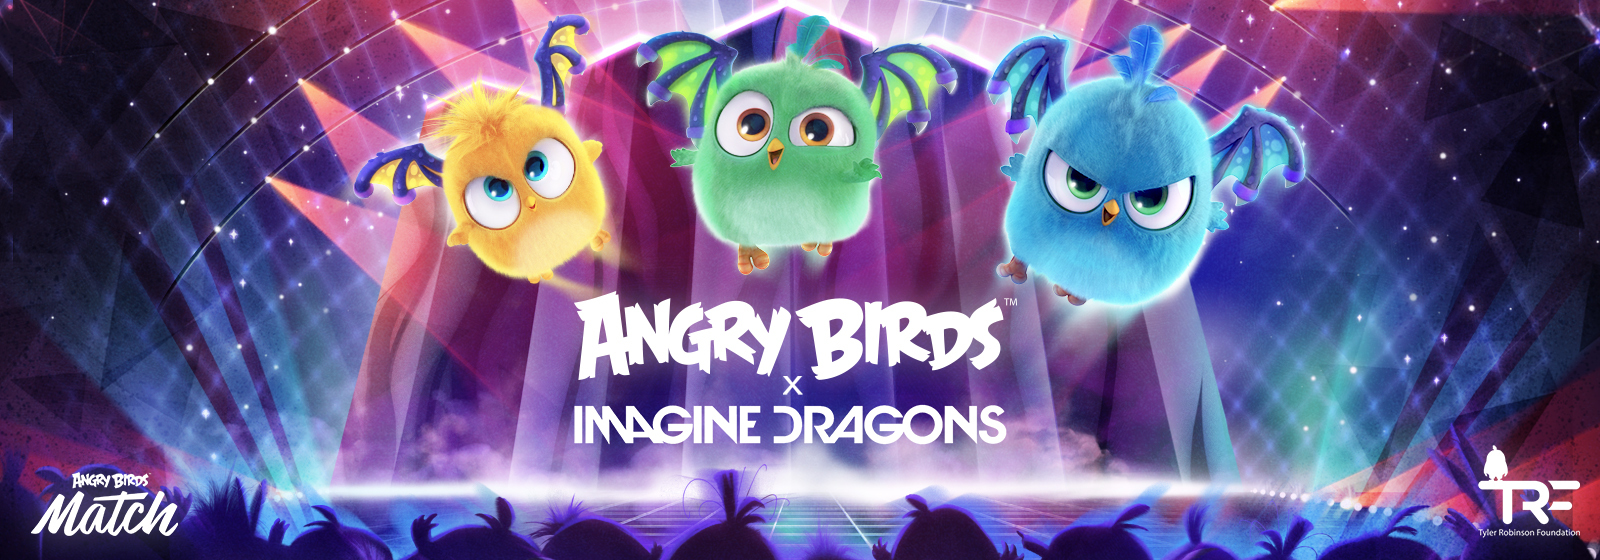 IMAGINE DRAGONS X ANGRY BIRDS Store